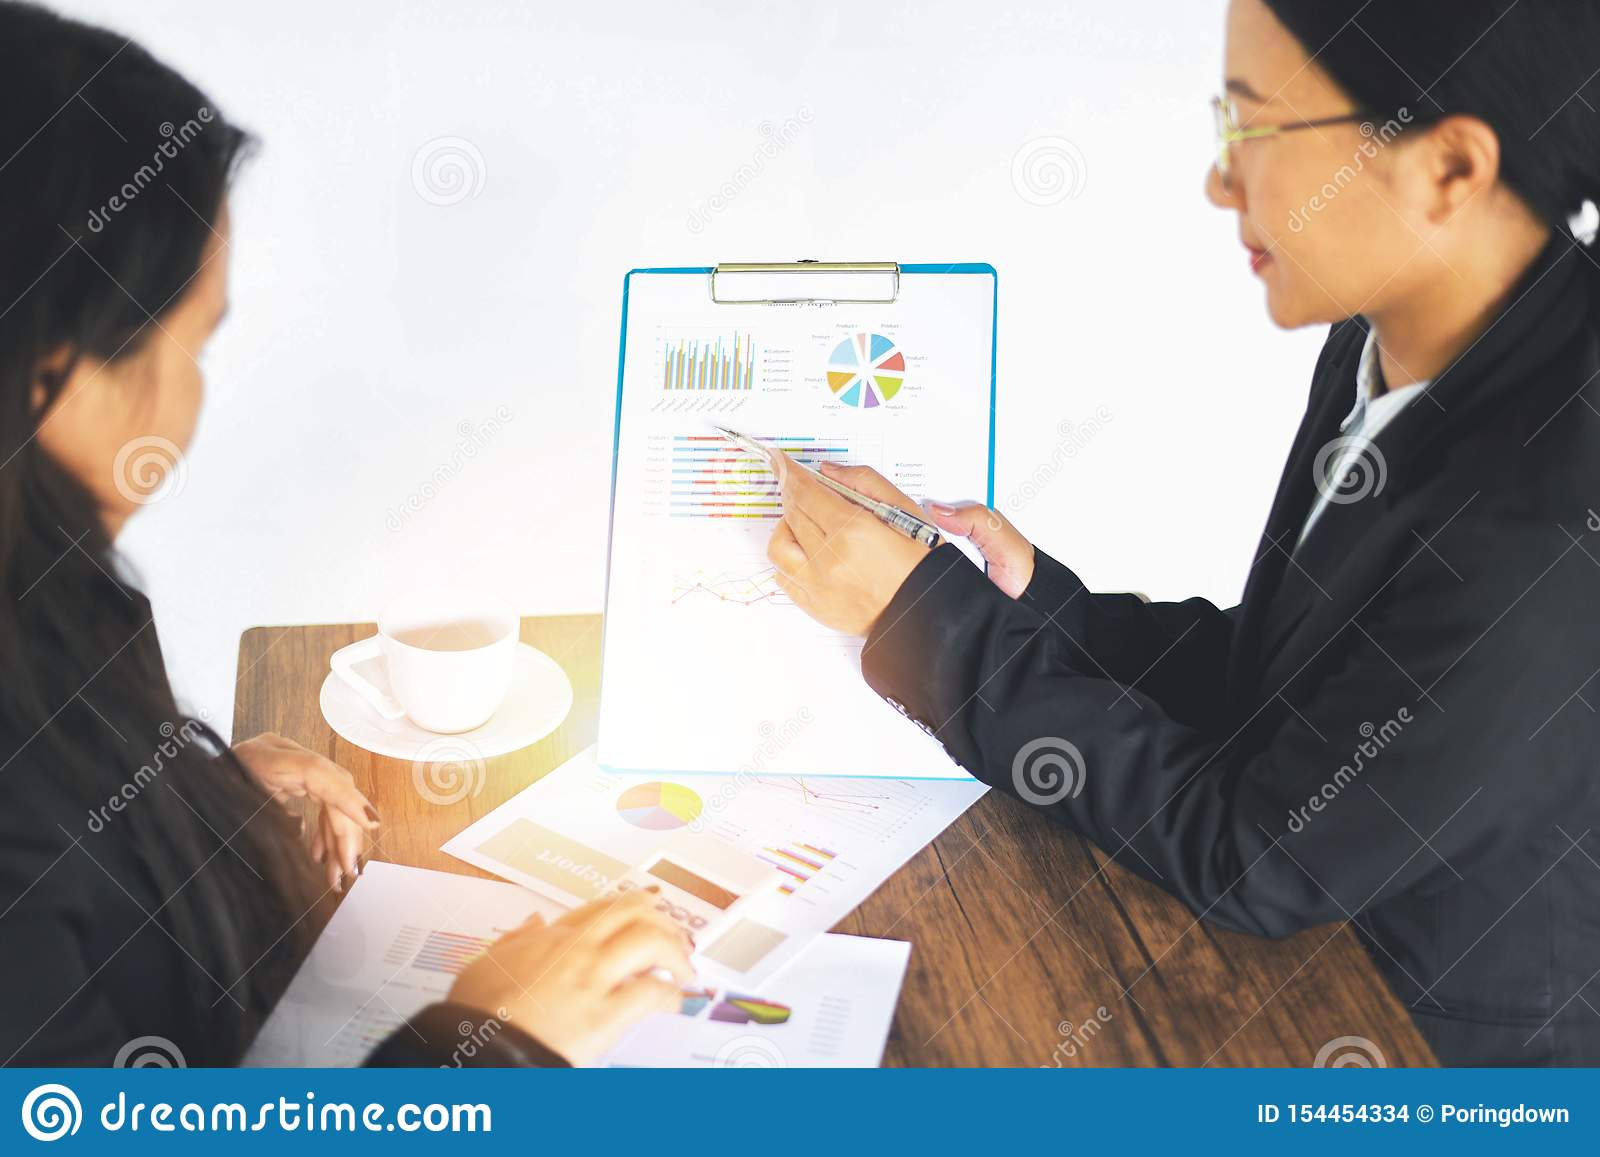 Asian business women working present the report graph financial information at the meeting in office the table desk - checking